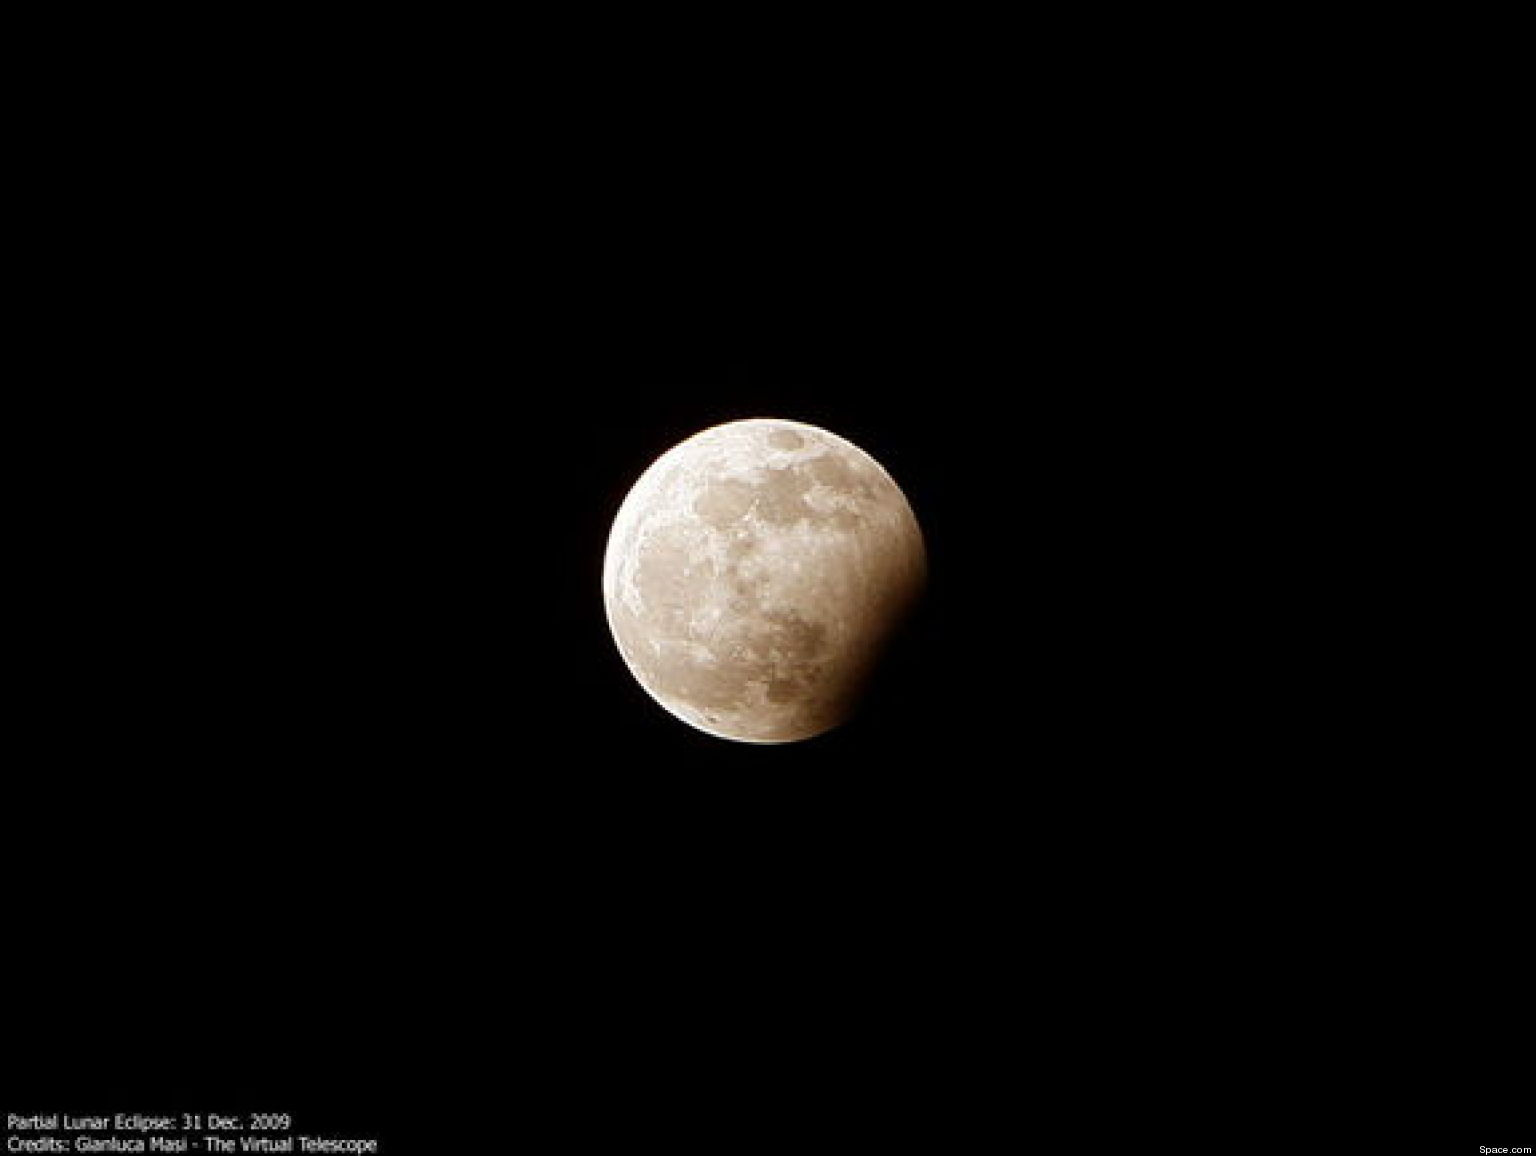 o-PARTIAL-LUNAR-ECLIPSE-2013-facebook.jpg (1536×1156)